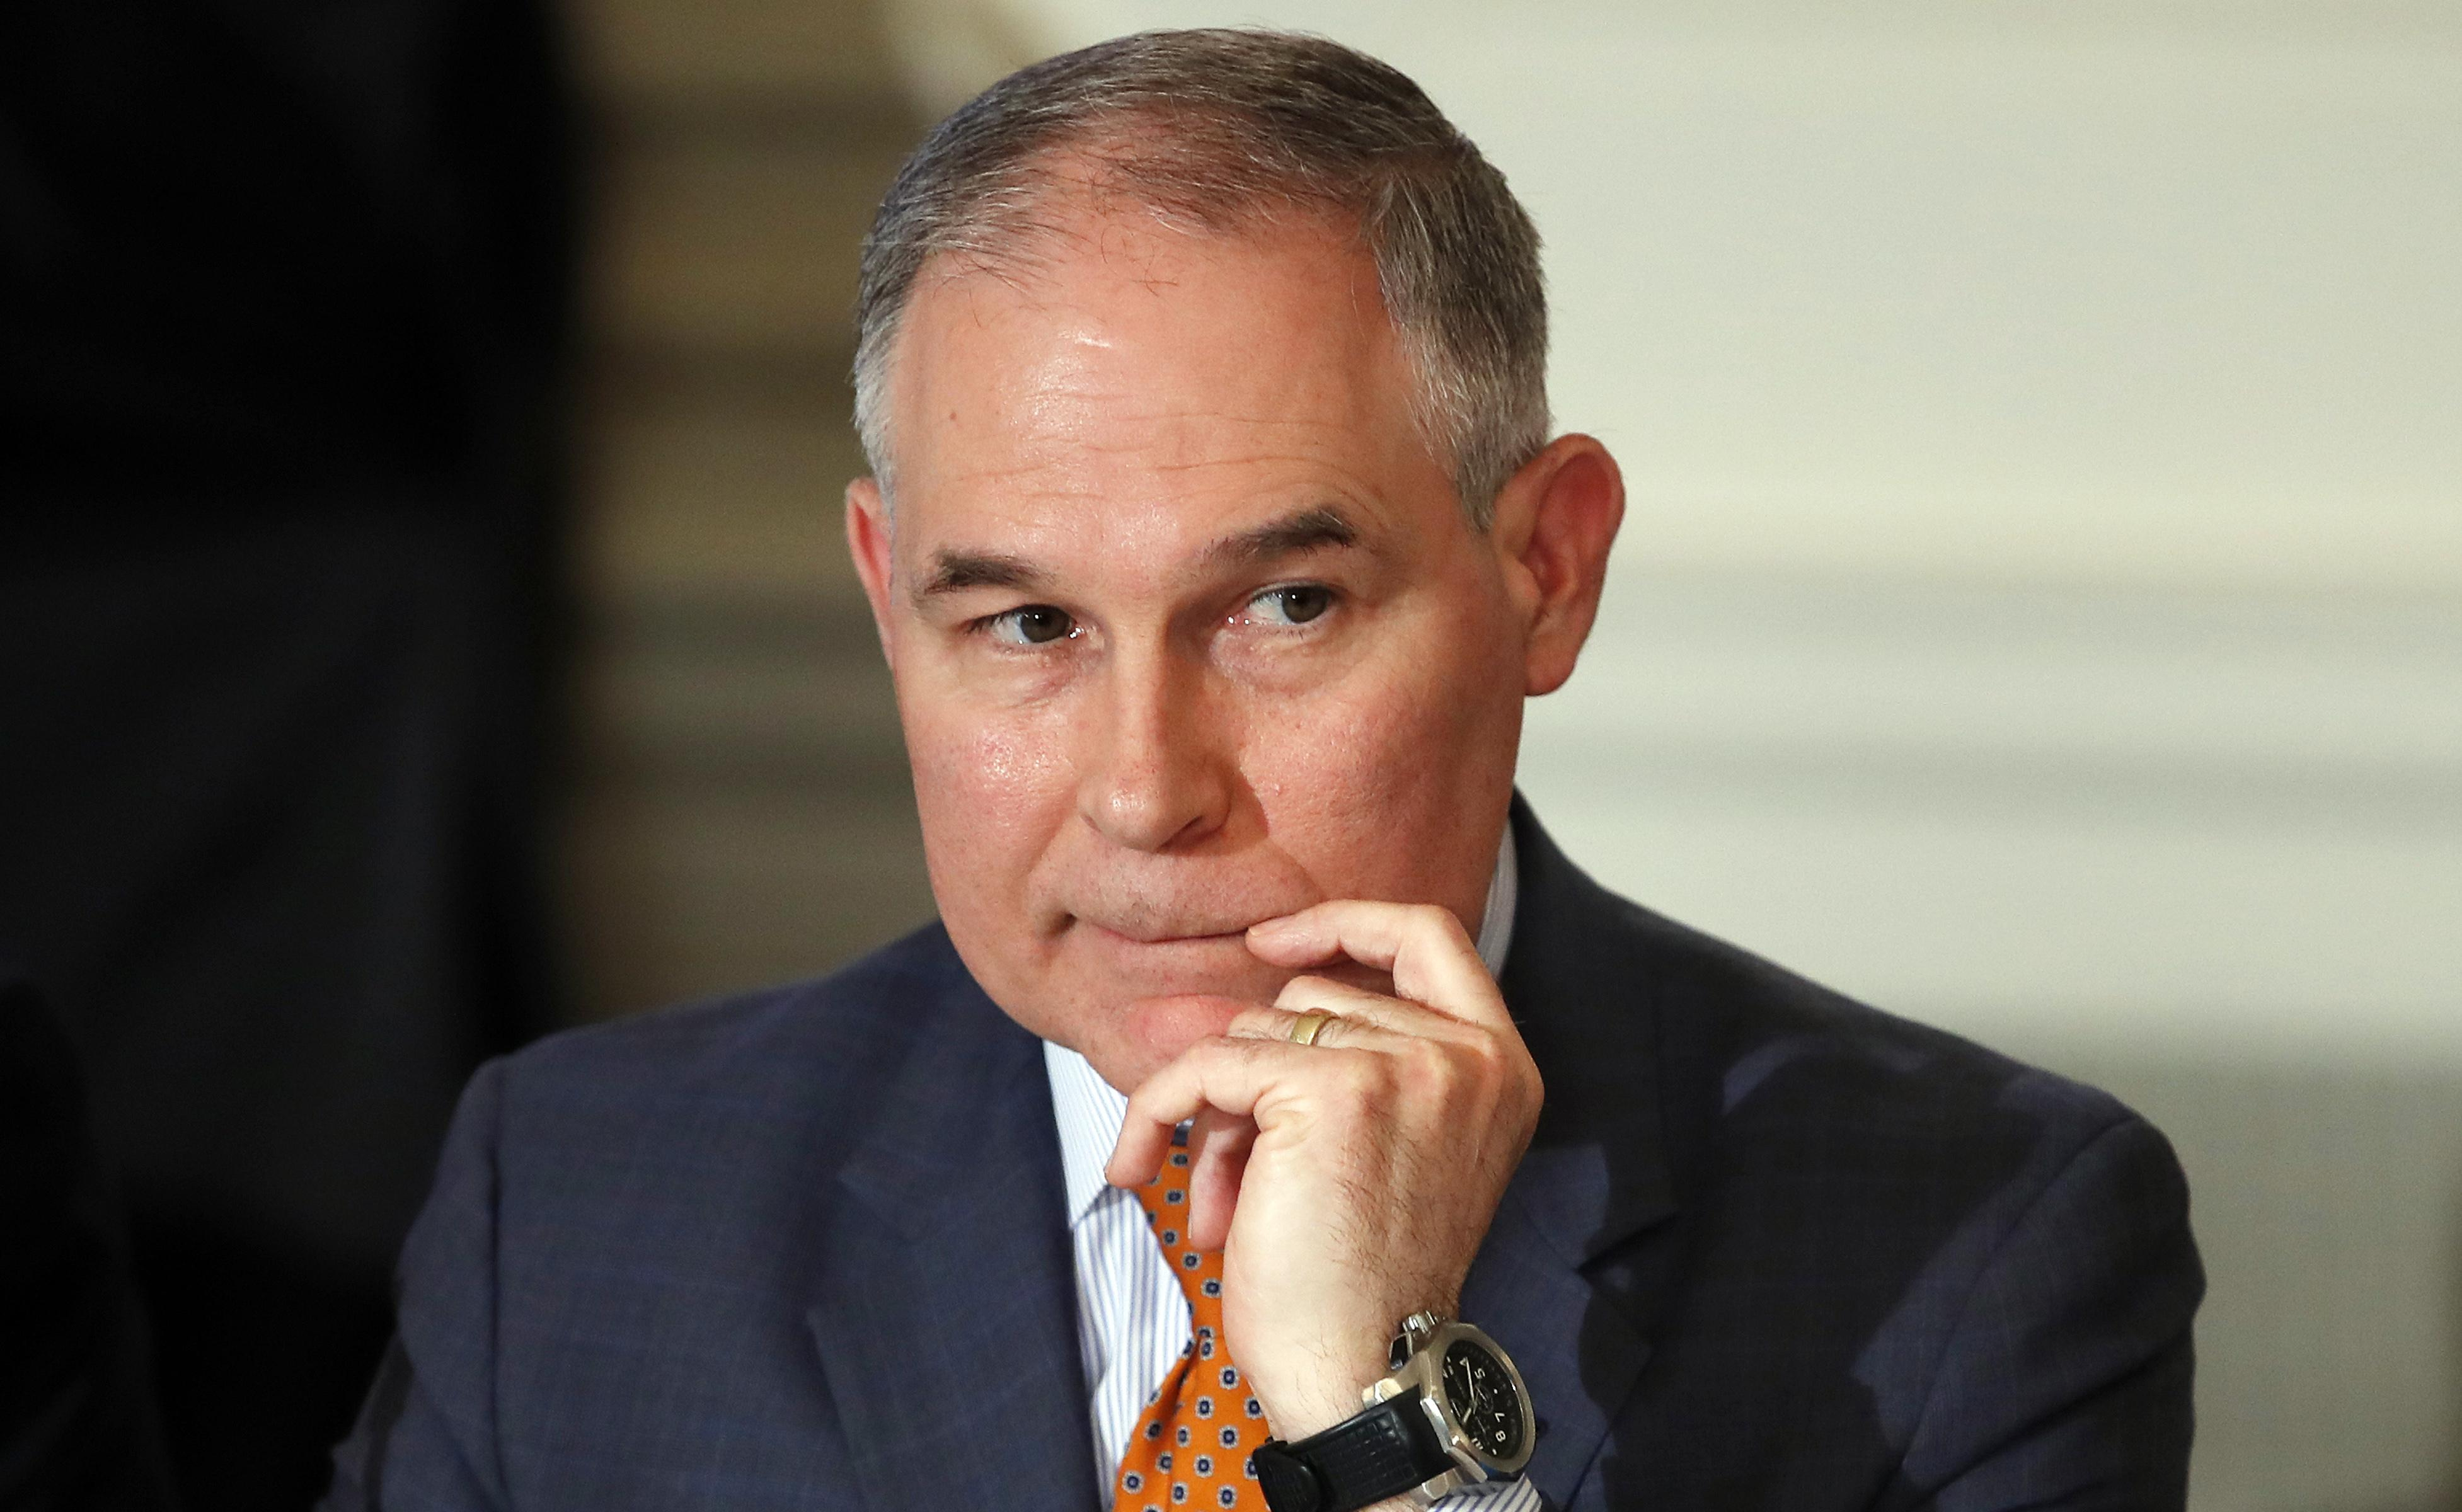 Why Theres Uproar Over Trying To >> After Uproar Epa S Pruitt Says He Plans To Fly Coach There S A